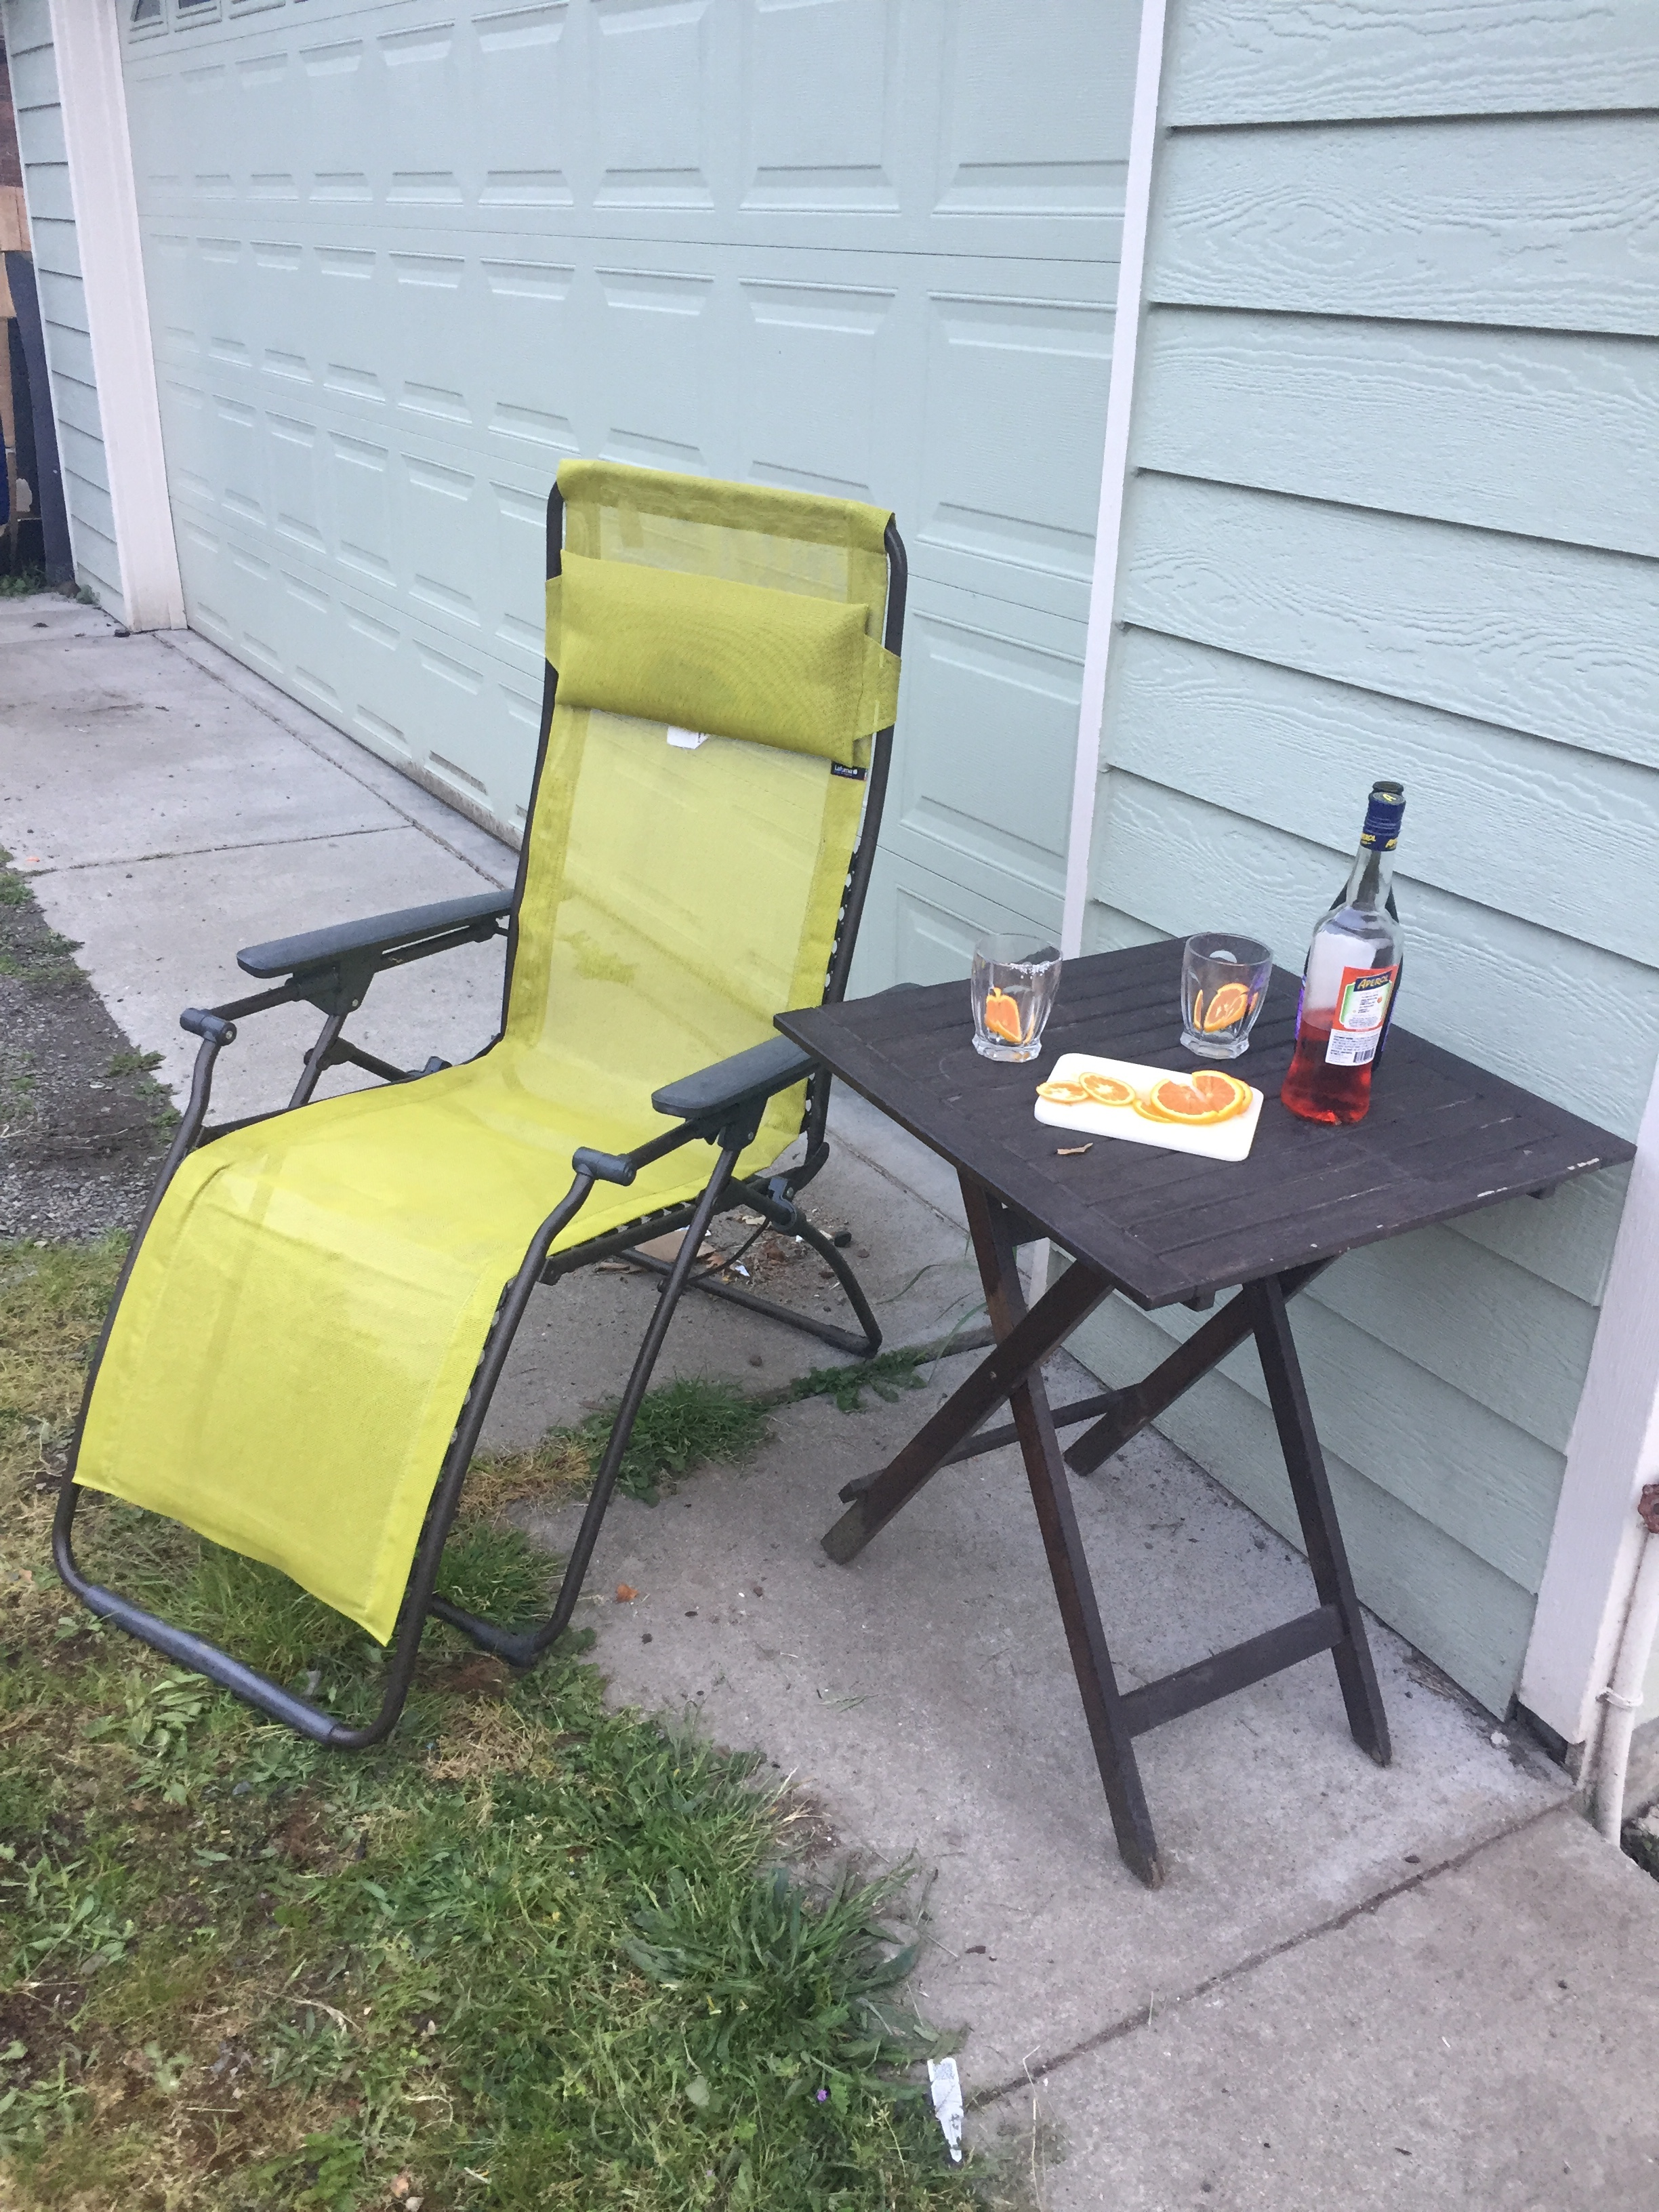 Lafuma reclining lounge chair in lime green next to small table with drink mix